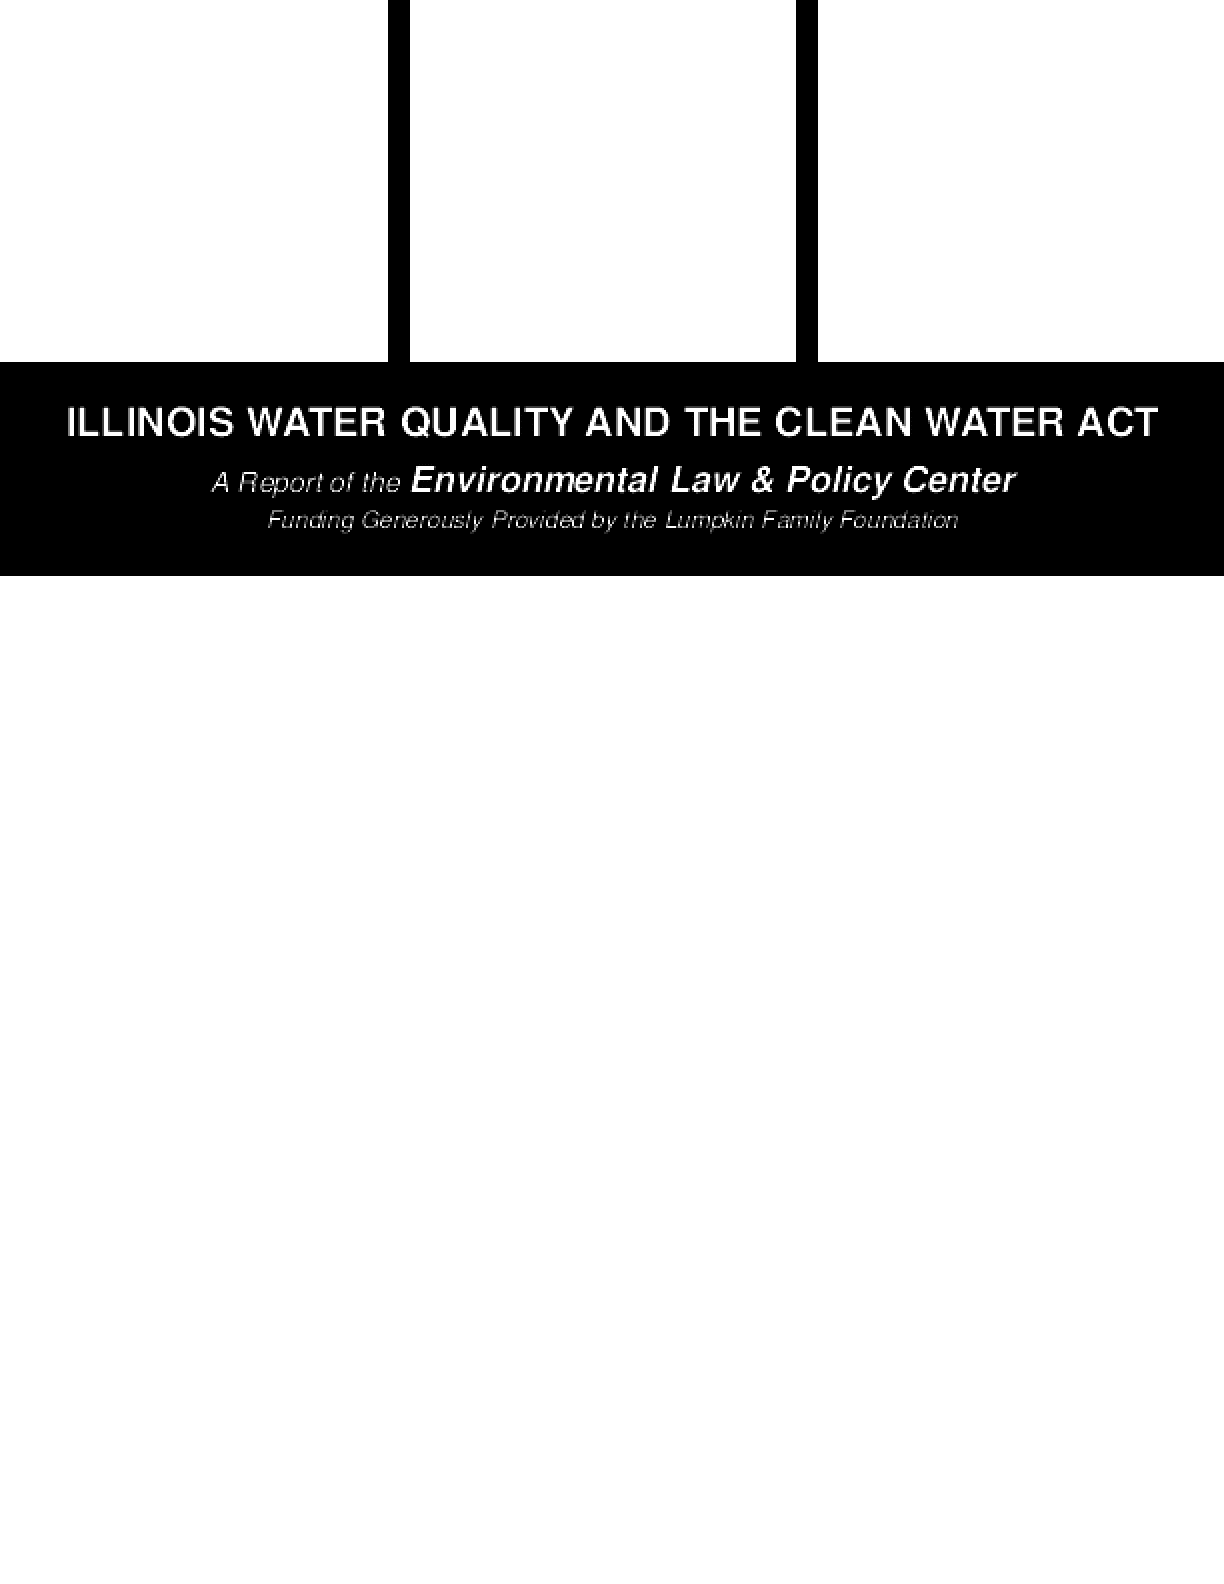 Illinois Water Quality and the Clean Water Act